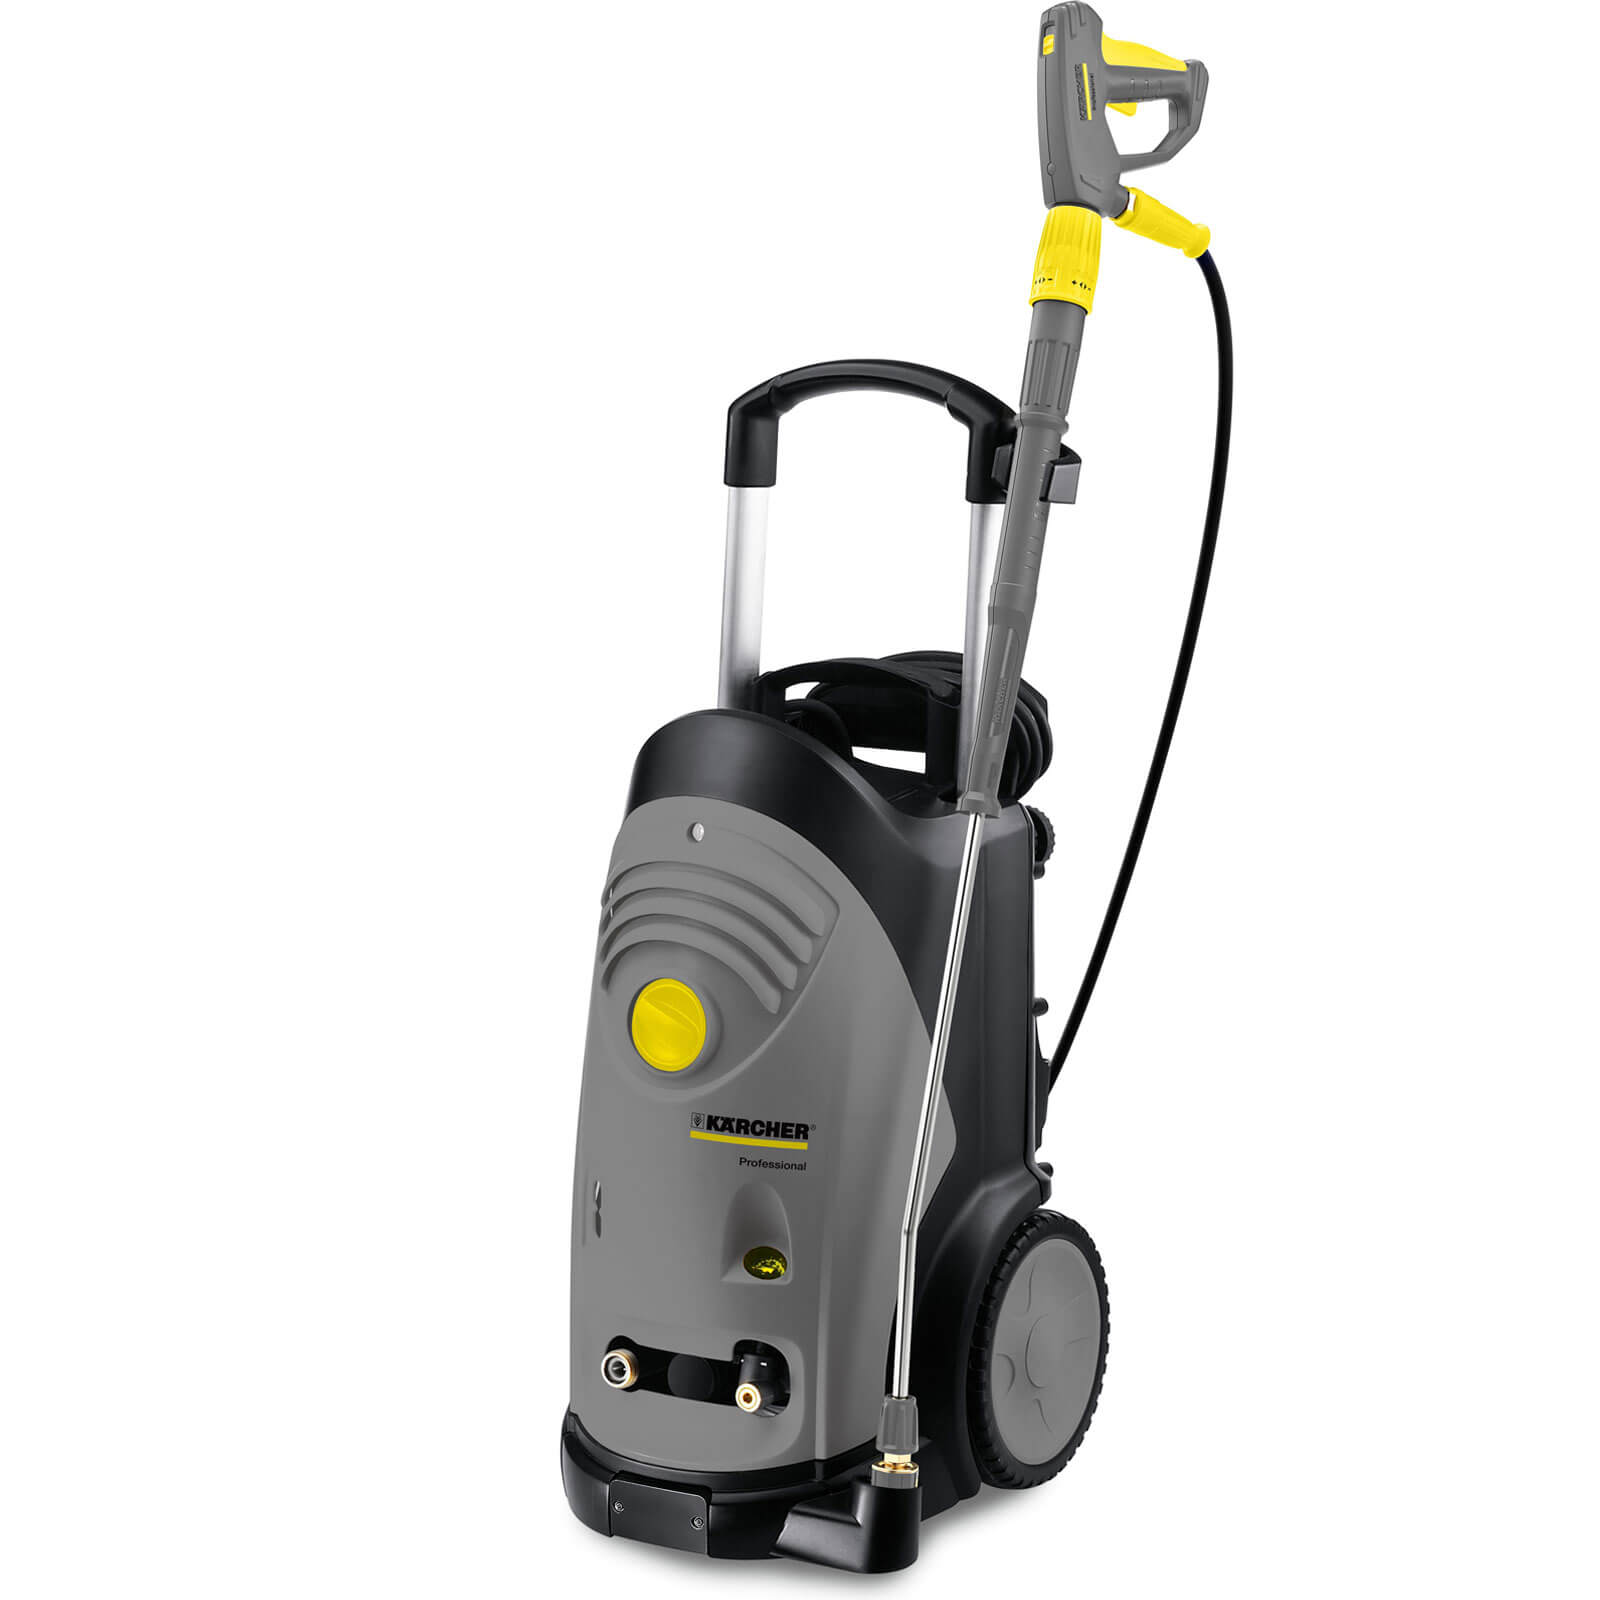 karcher hd 6 11 4m plus professional pressure washer 130. Black Bedroom Furniture Sets. Home Design Ideas